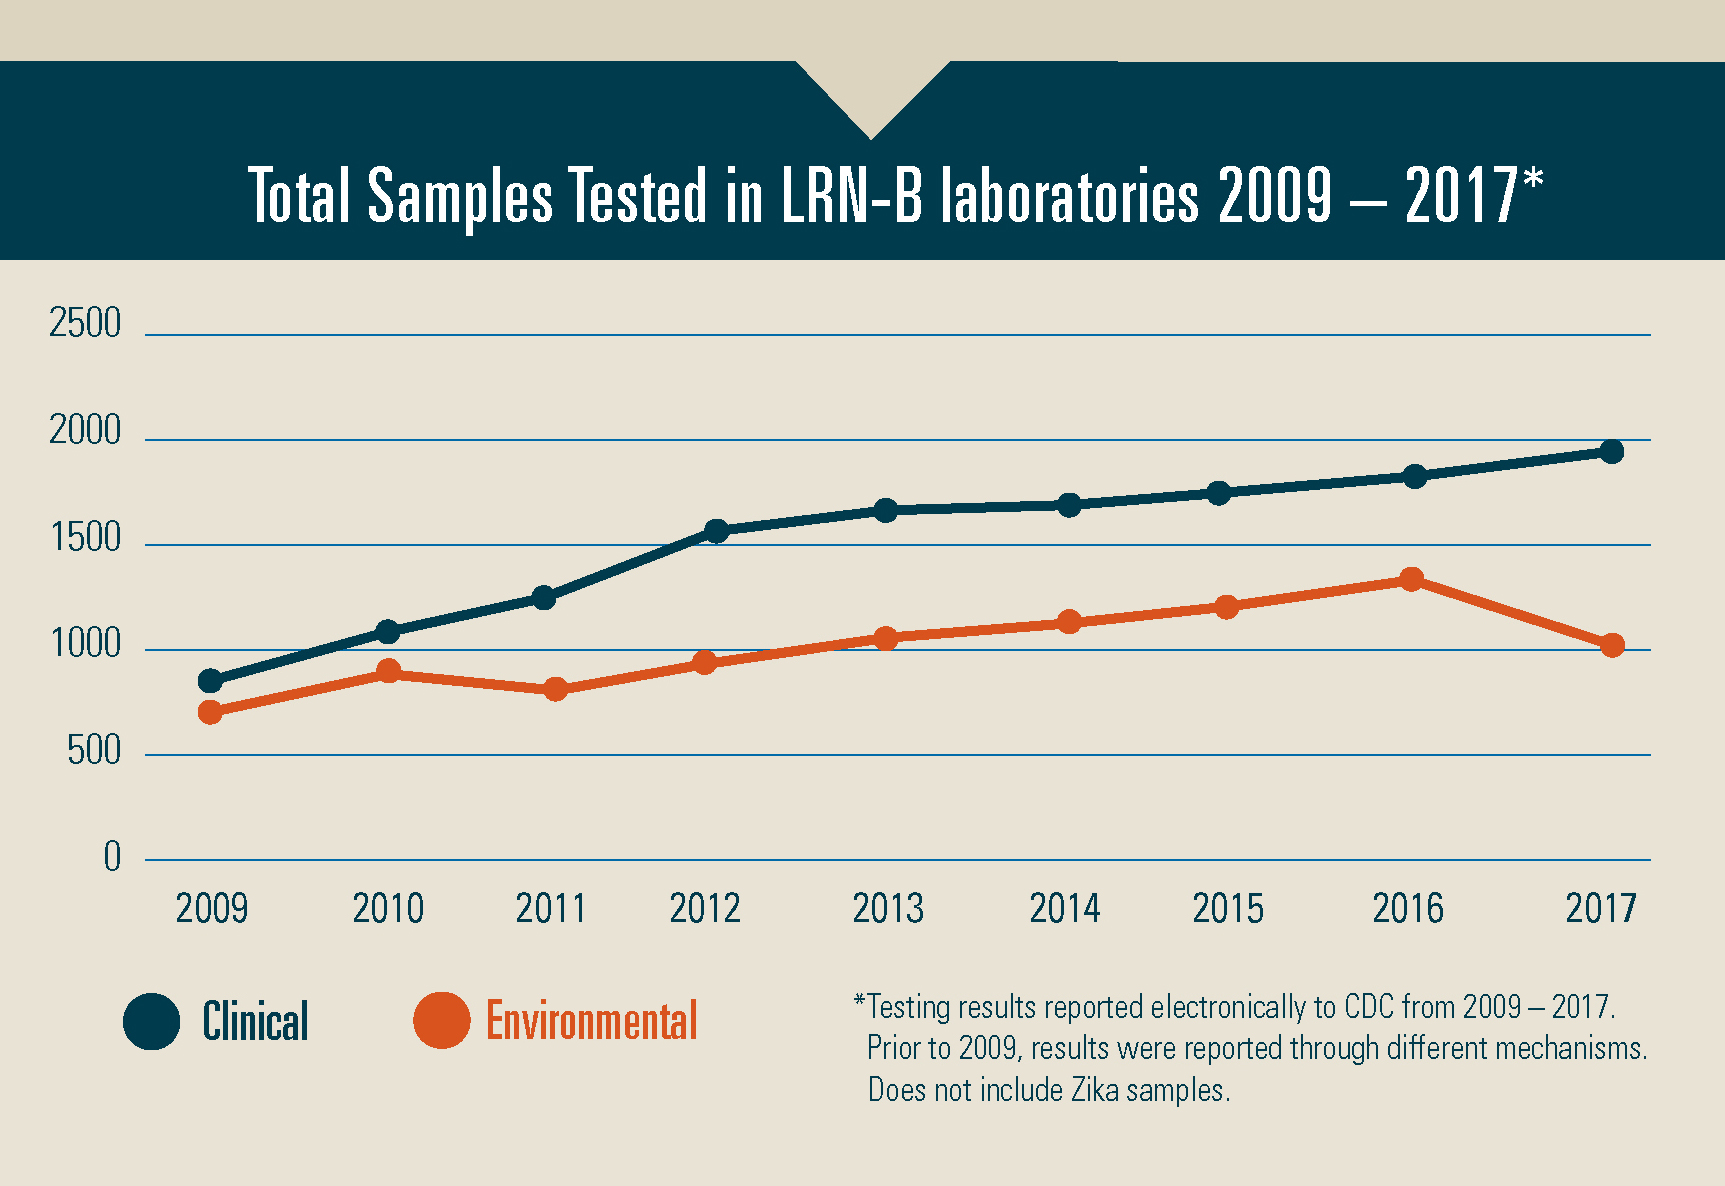 : Graph illustrating the number of clinical and environmental samples tested in LRN-B laboratories from 2009 to 2017, not including Zika samples.